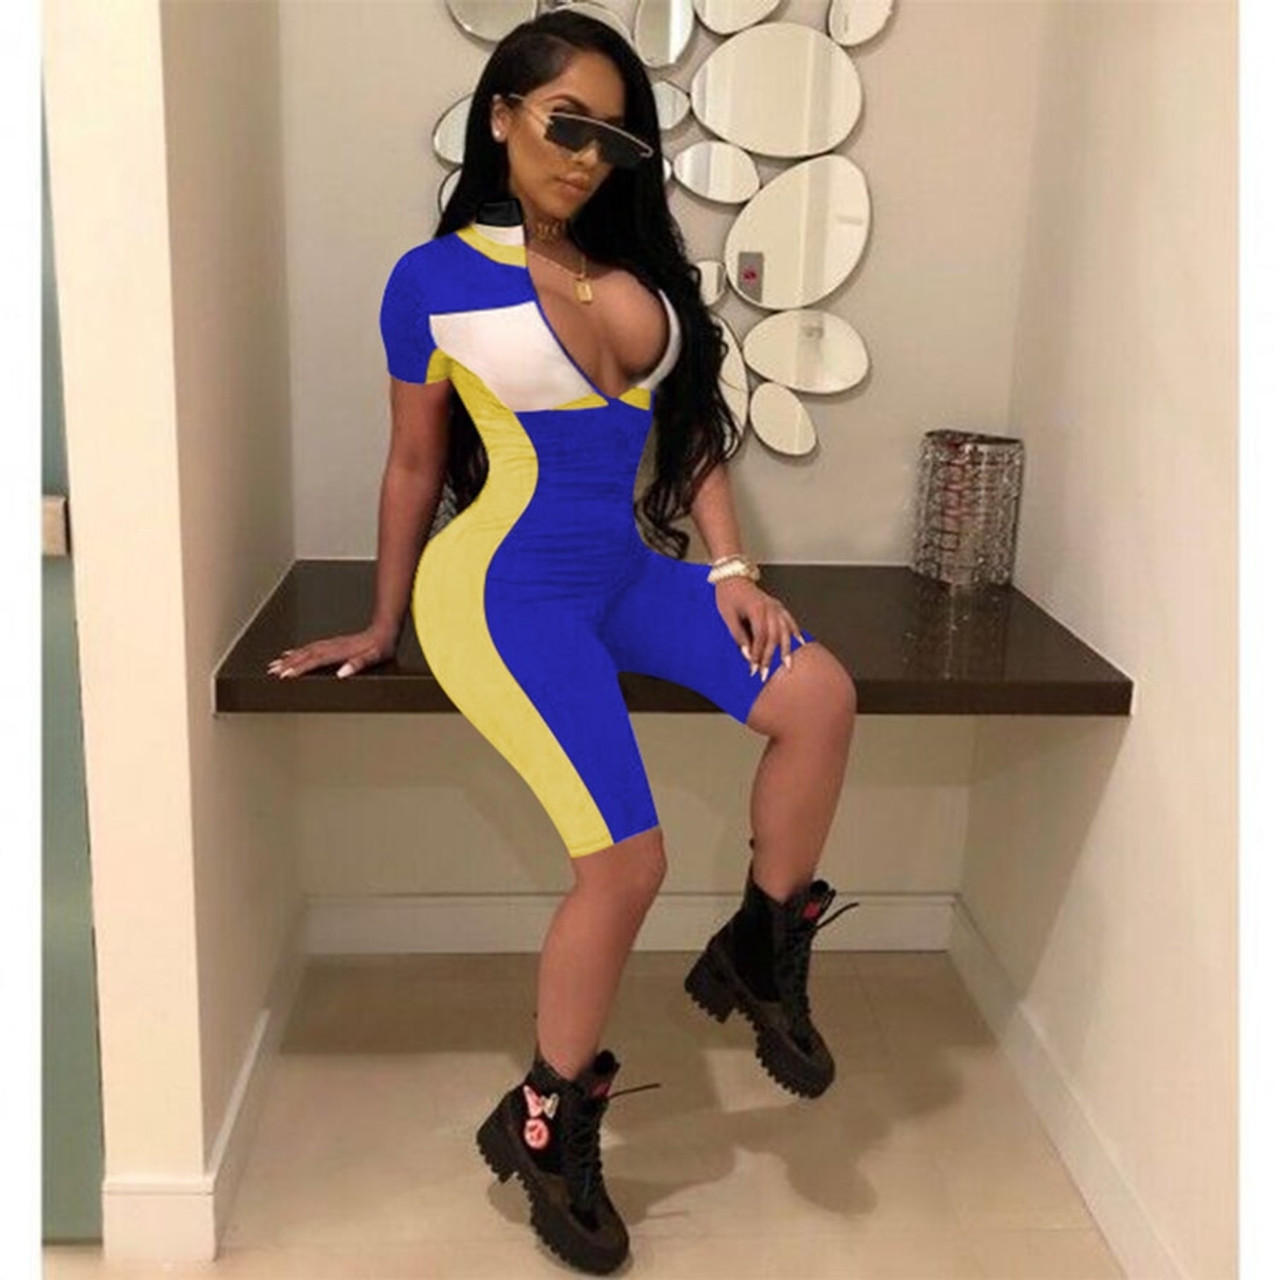 98872e7115e ... HAOYUAN Sexy Playsuit 2019 New Fitness Shorts Bodysuit Short Sleeve  Casual Body Summer Overalls Zip Up ...